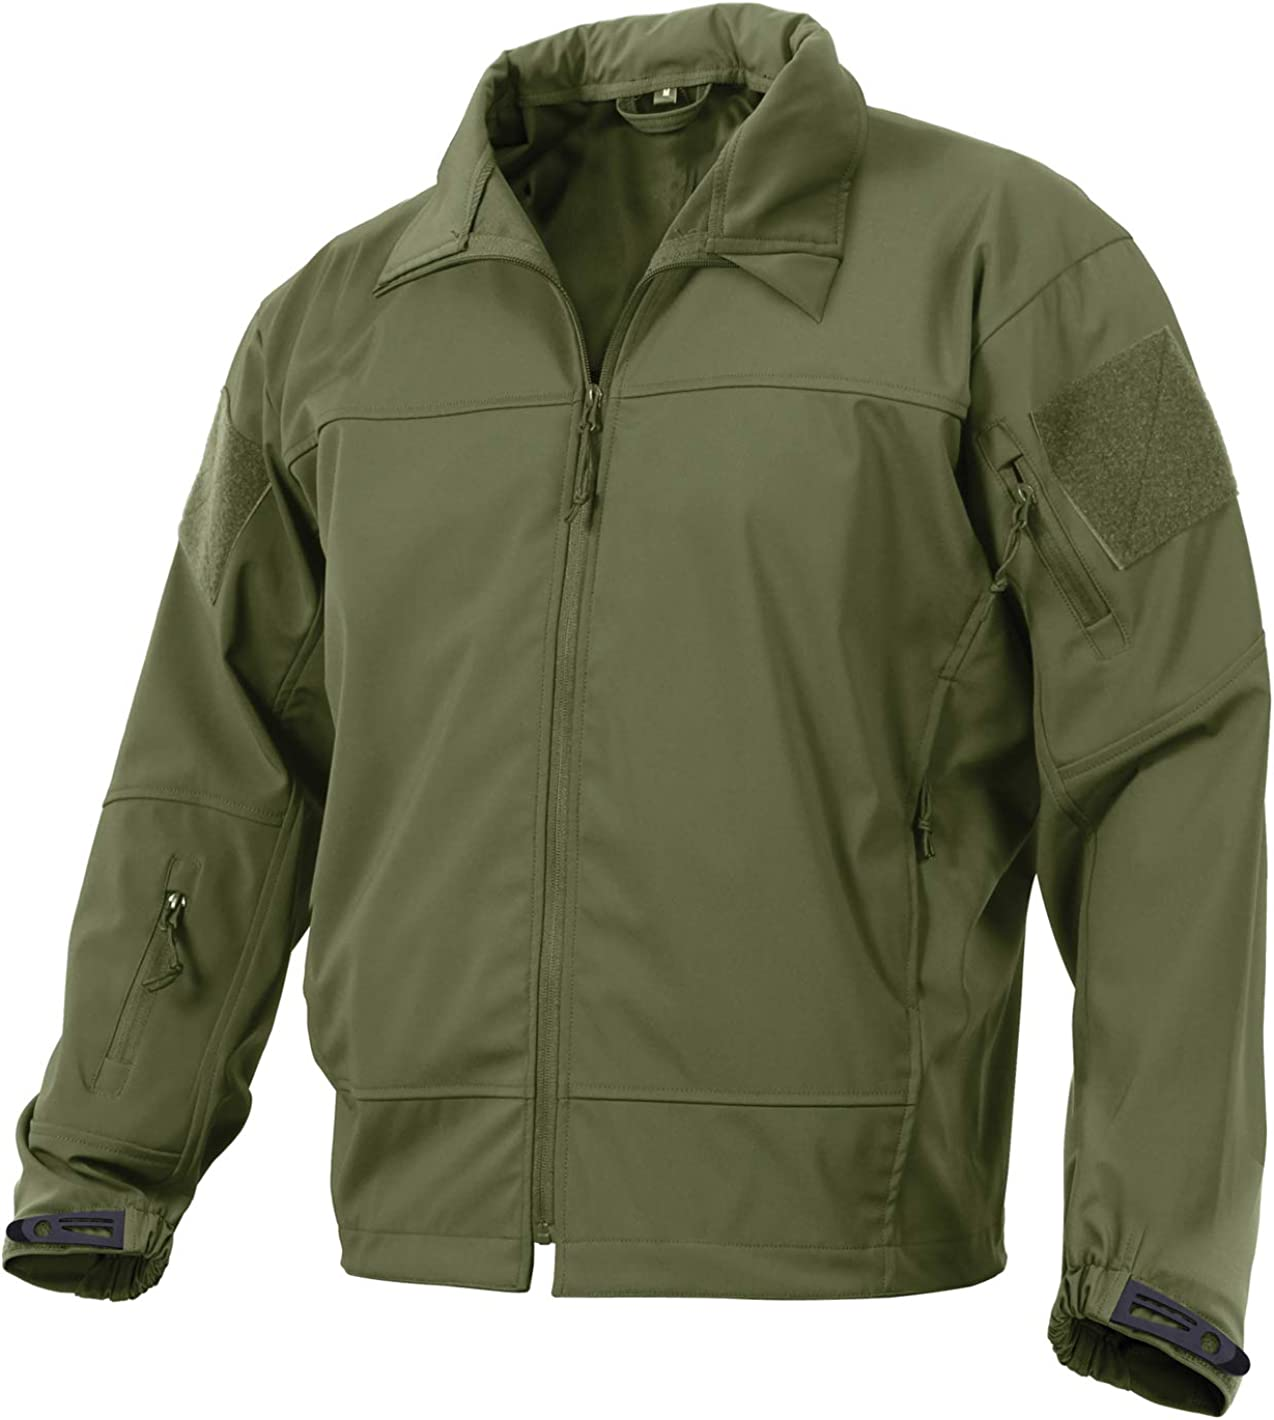 Rothco Covert Ops Lt Weight Jacket Soft SALENEW 2021 new very popular Shell